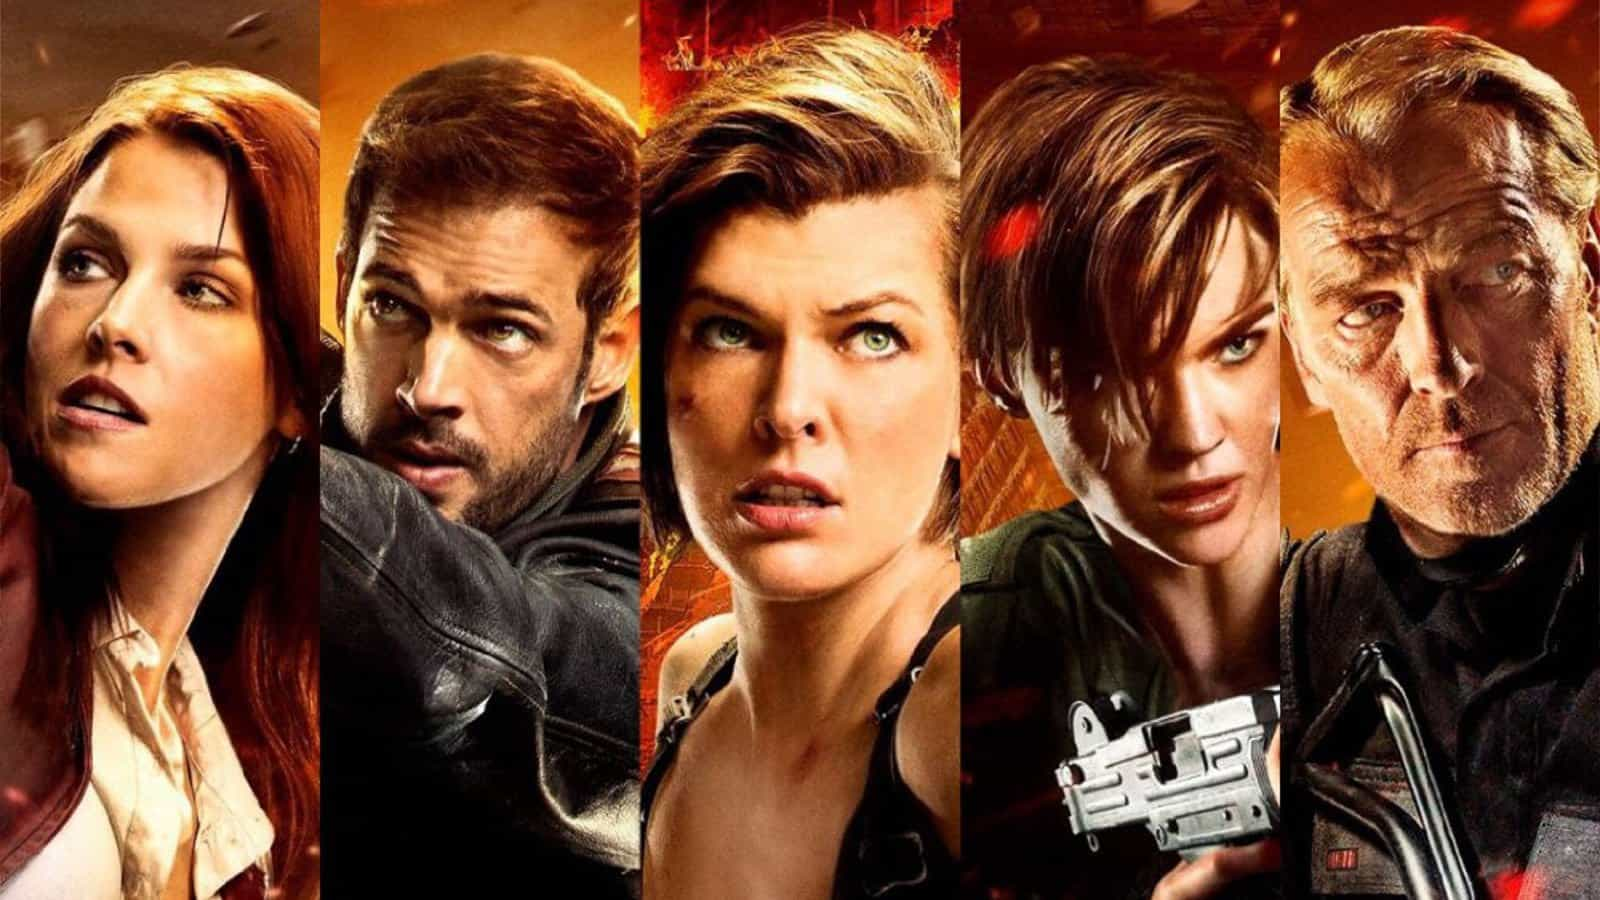 Vamers - Reviews - TV & Movies - Resident Evil The (eventual) Final Chapter [REVIEW] - 01